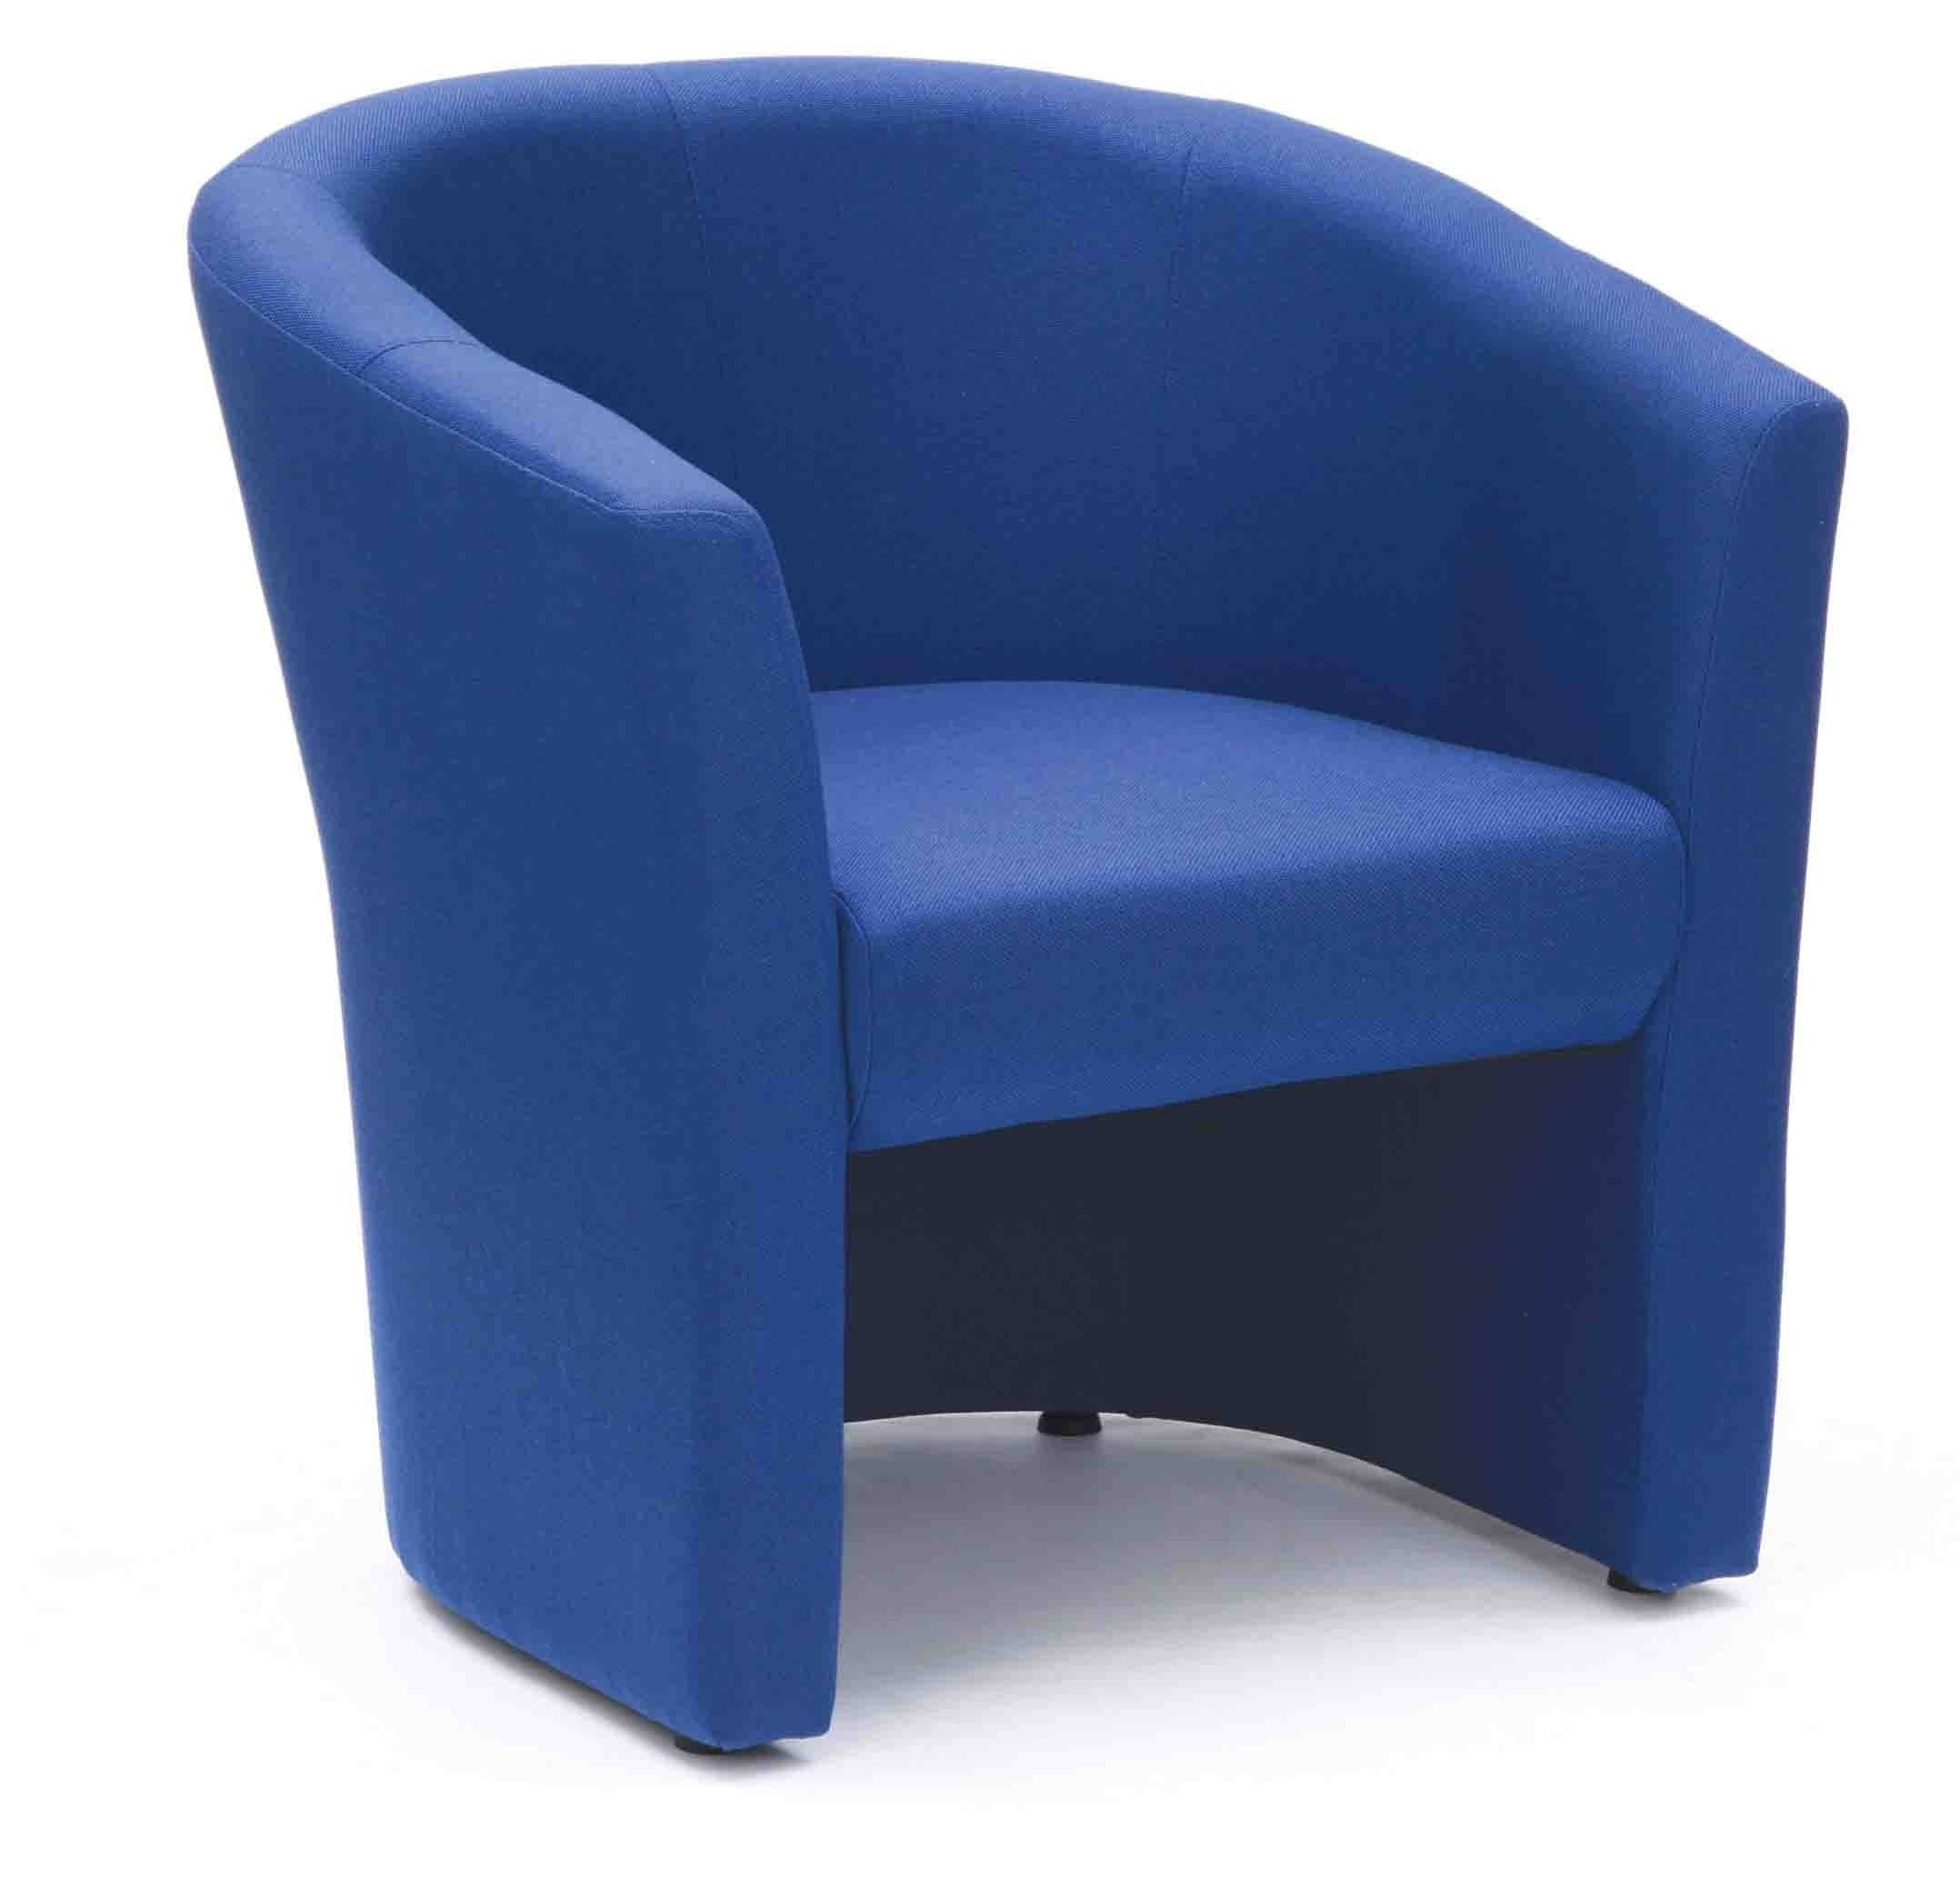 Blue Sofa Chair | Sofa Gallery | Kengire regarding Blue Sofa Chairs (Image 12 of 30)